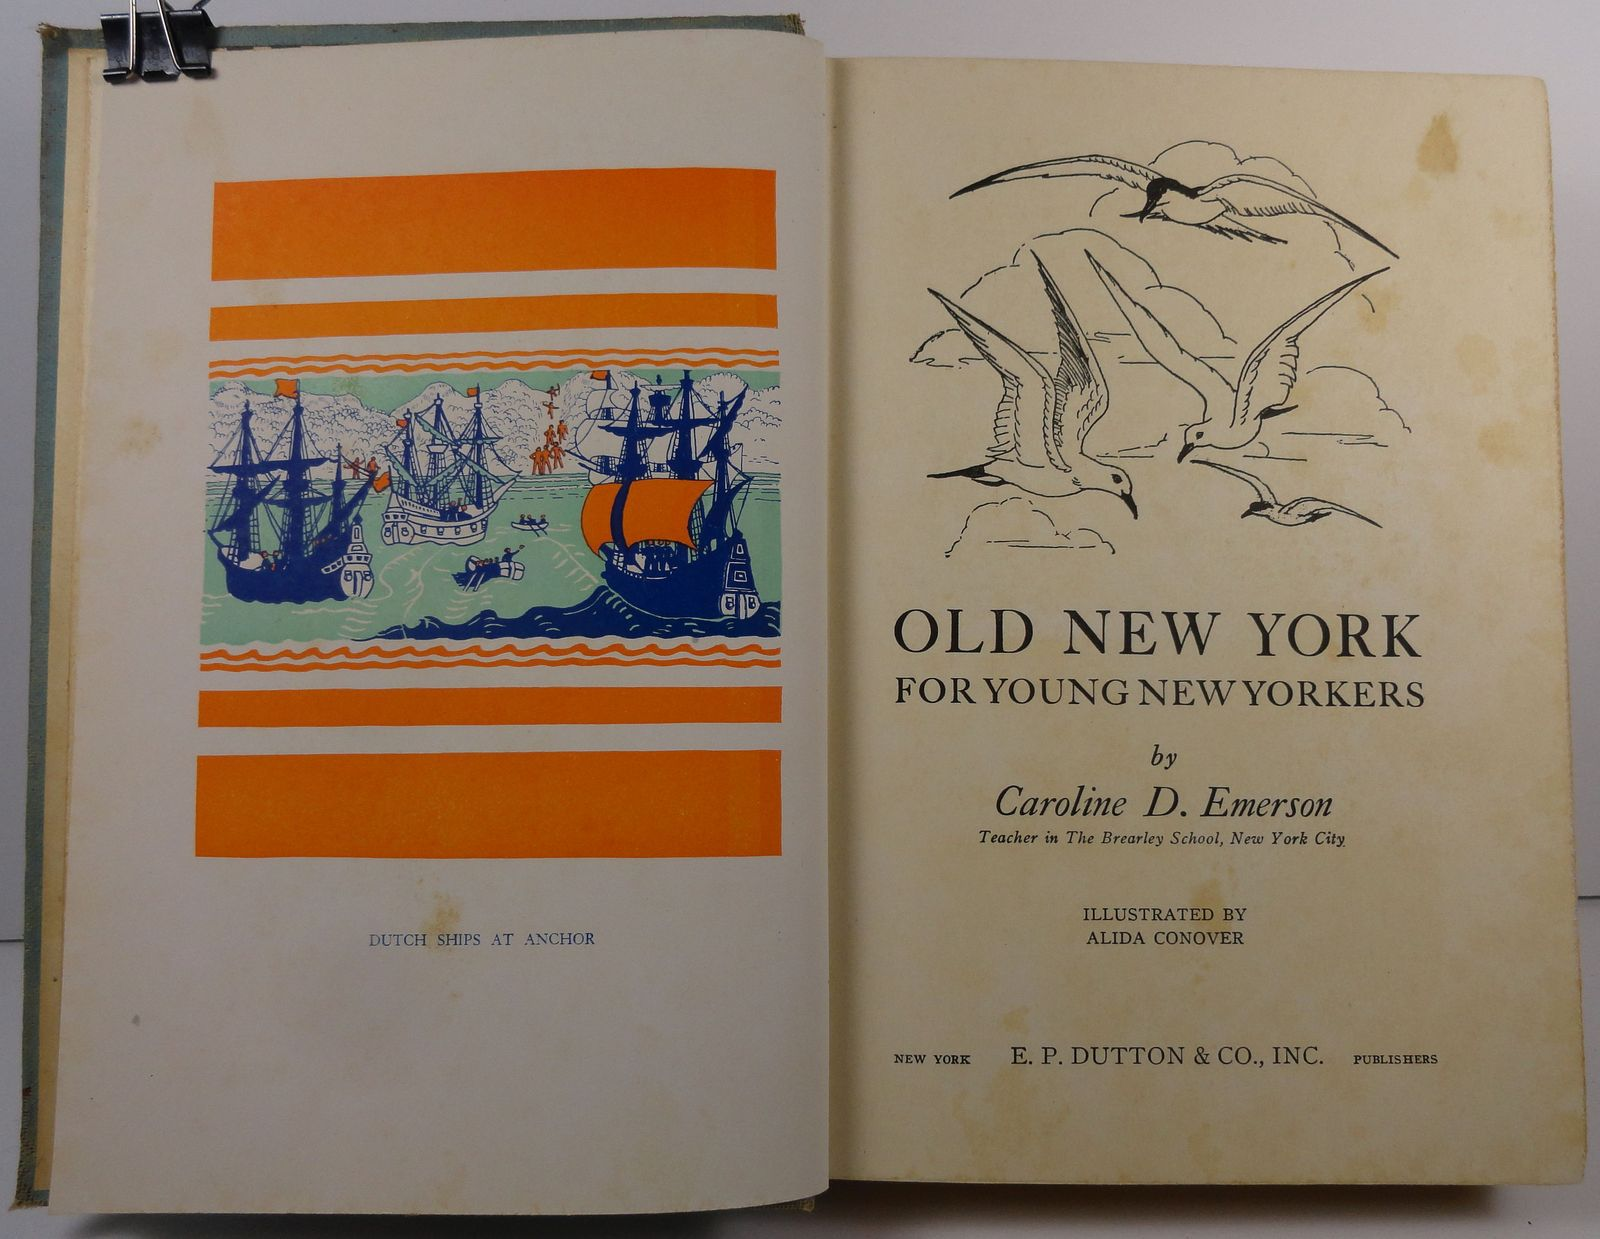 Old New York for Young New Yorkers by Caroline D. Emerson